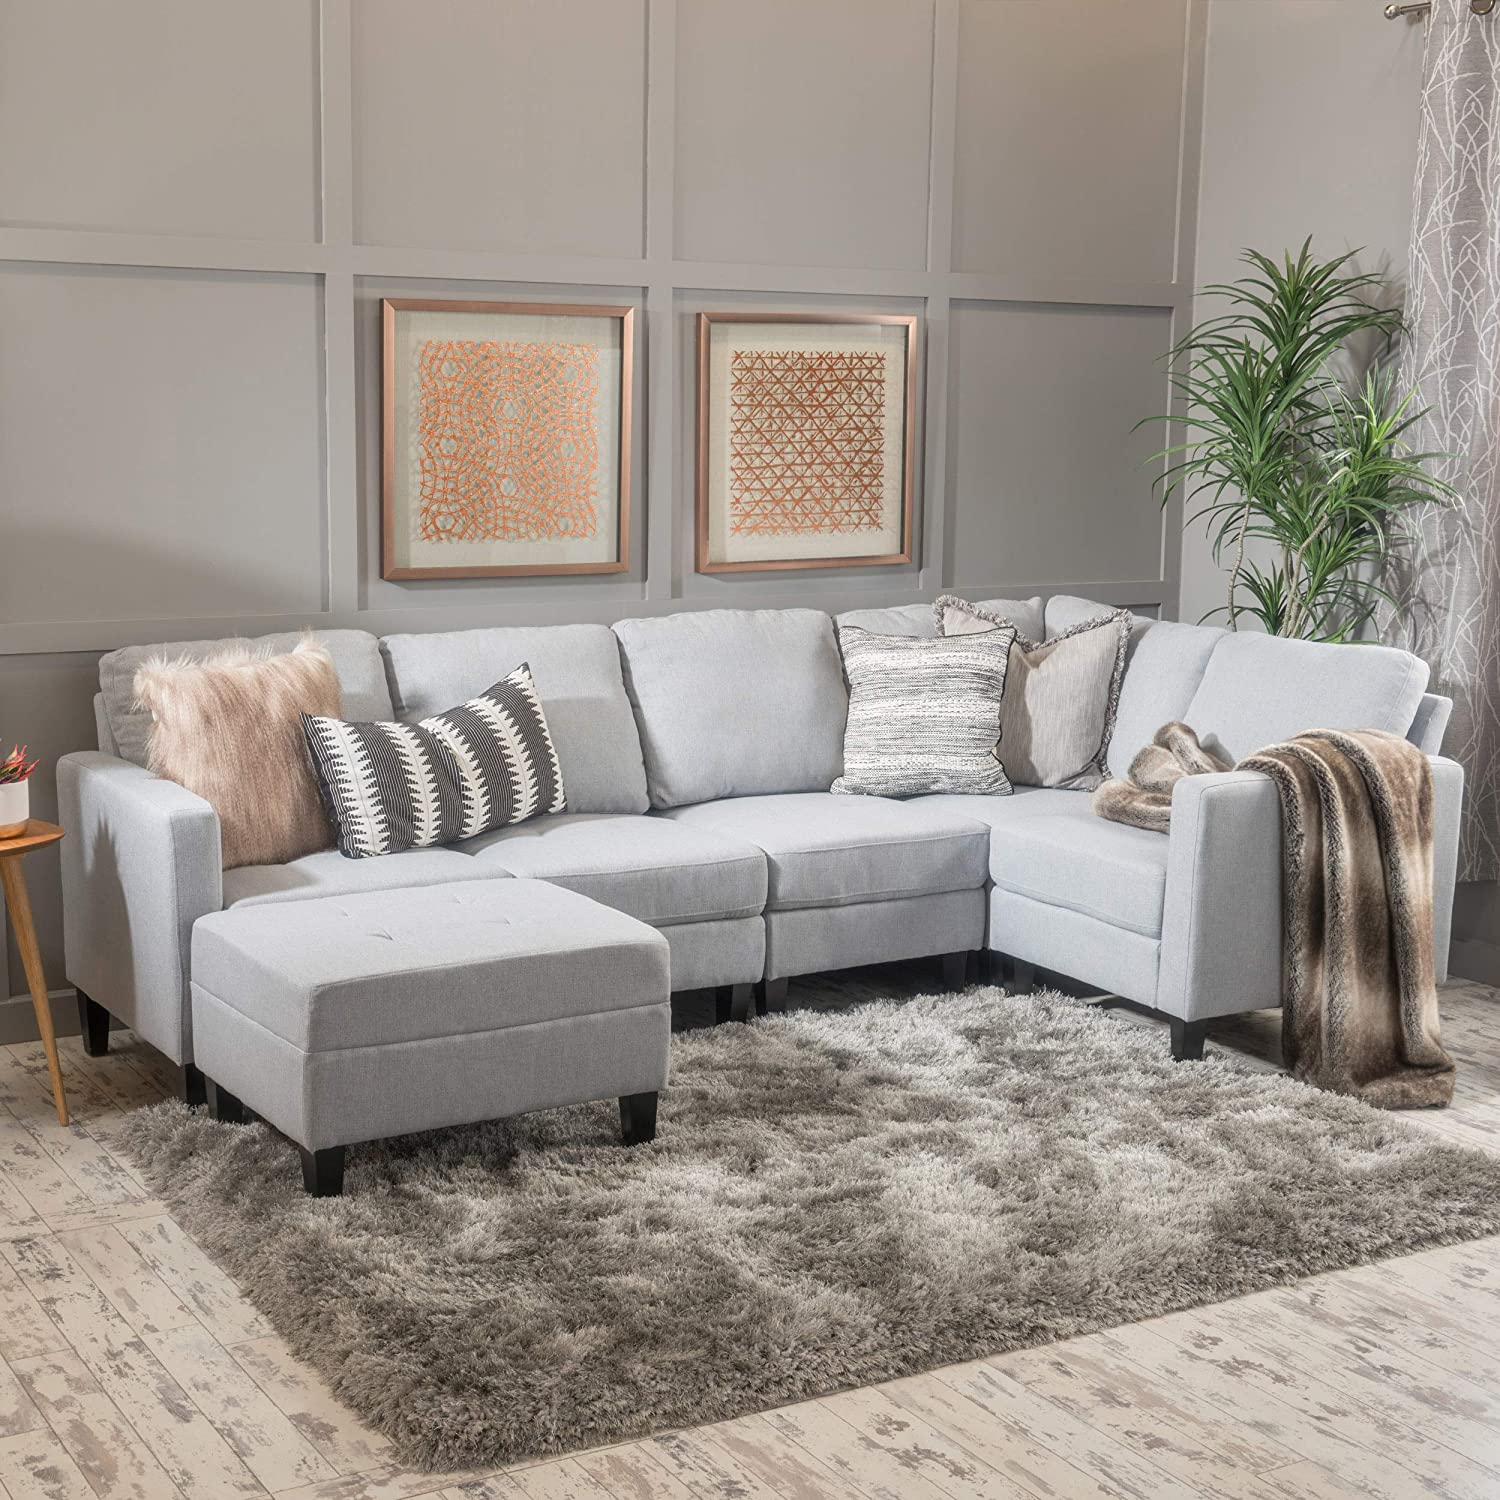 Christopher Knight Home Bridger Light Grey Fabric Sectional Couch with Ottoman